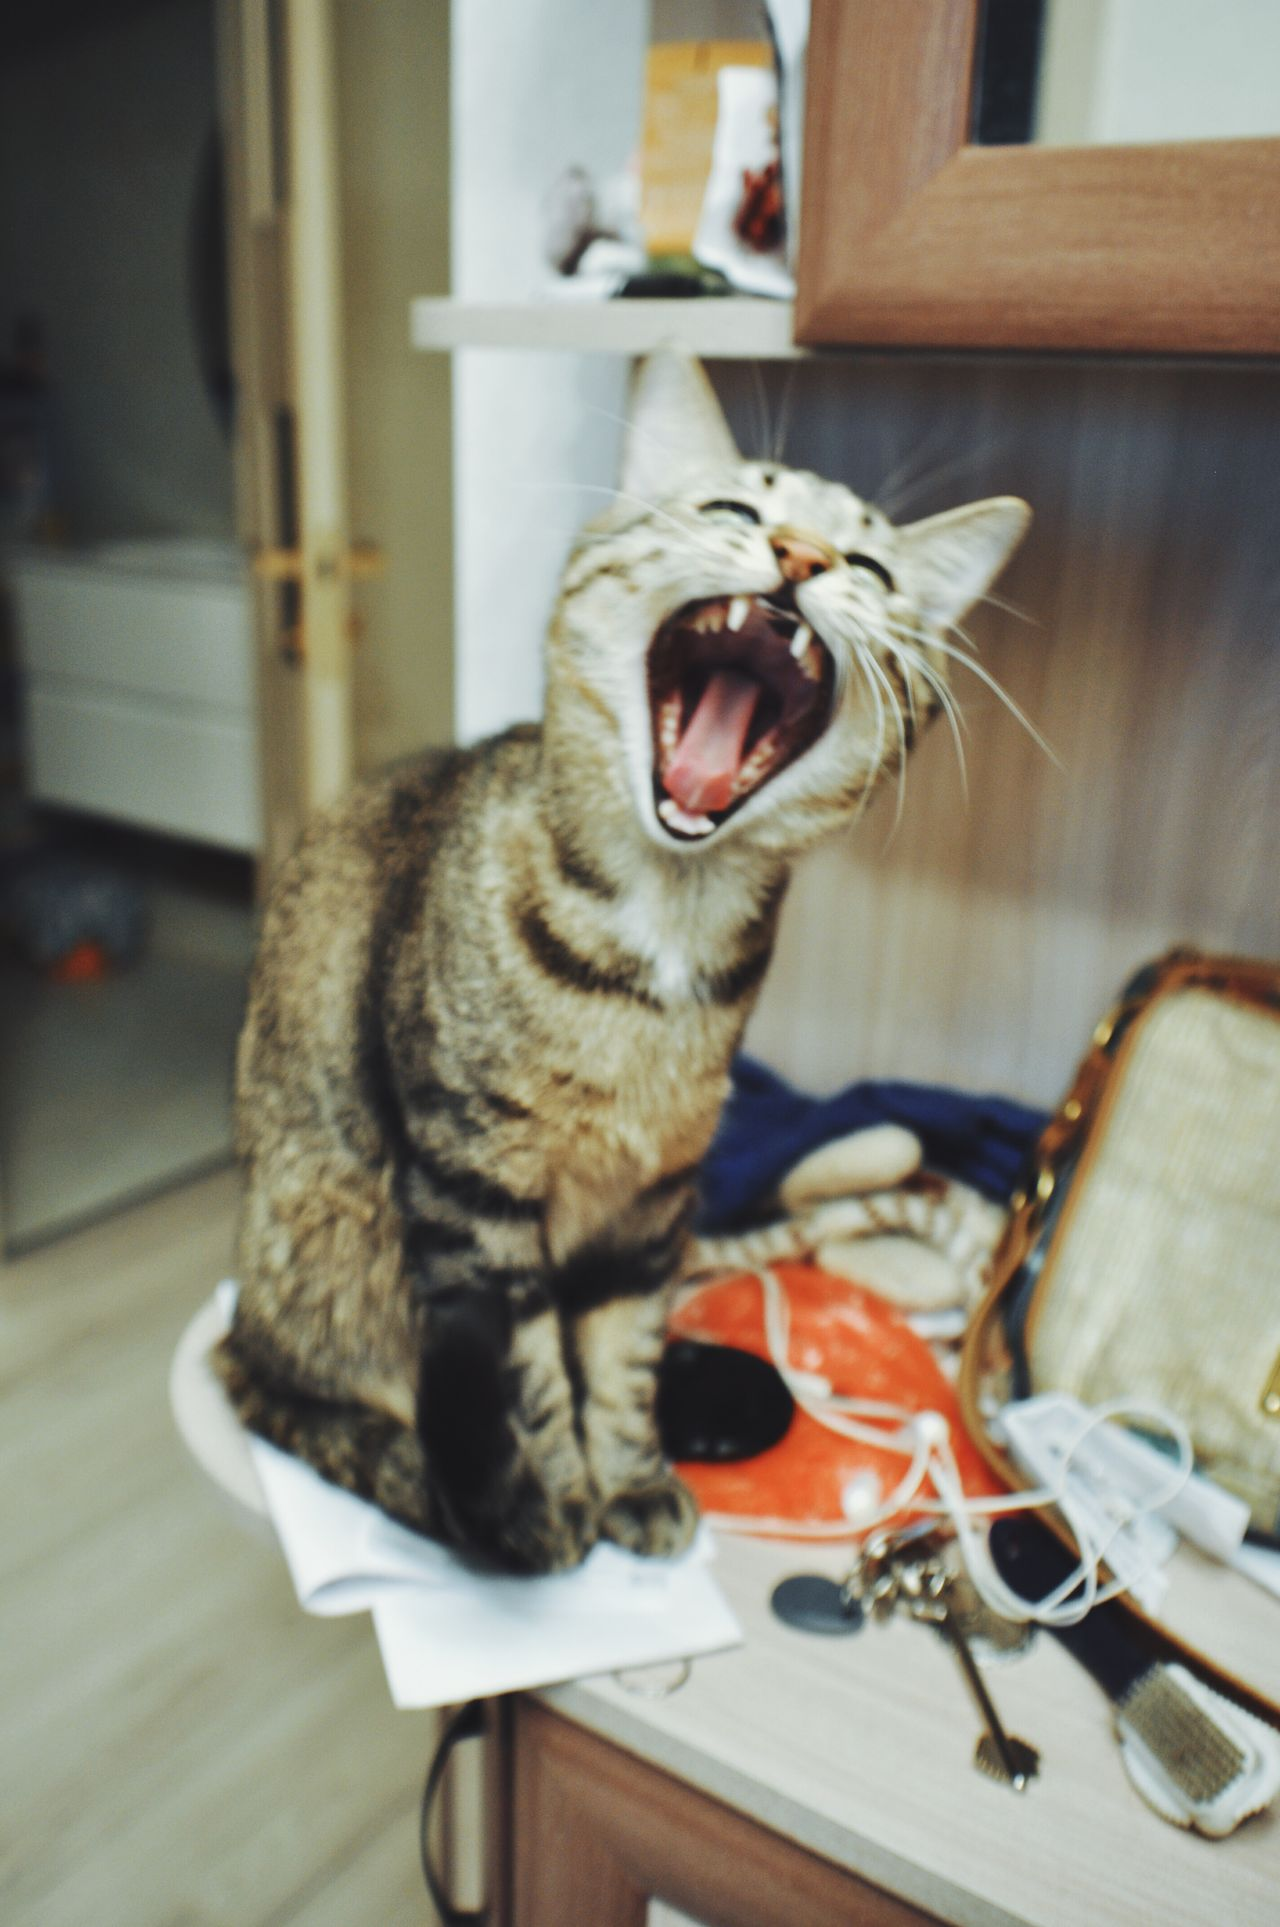 Animal Animal Themes Close-up Day Domestic Animals Domestic Cat Feline Indoors  Mammal Meow Mouth Open No People One Animal Pets Shouting The Week Of Eyeem Yawning